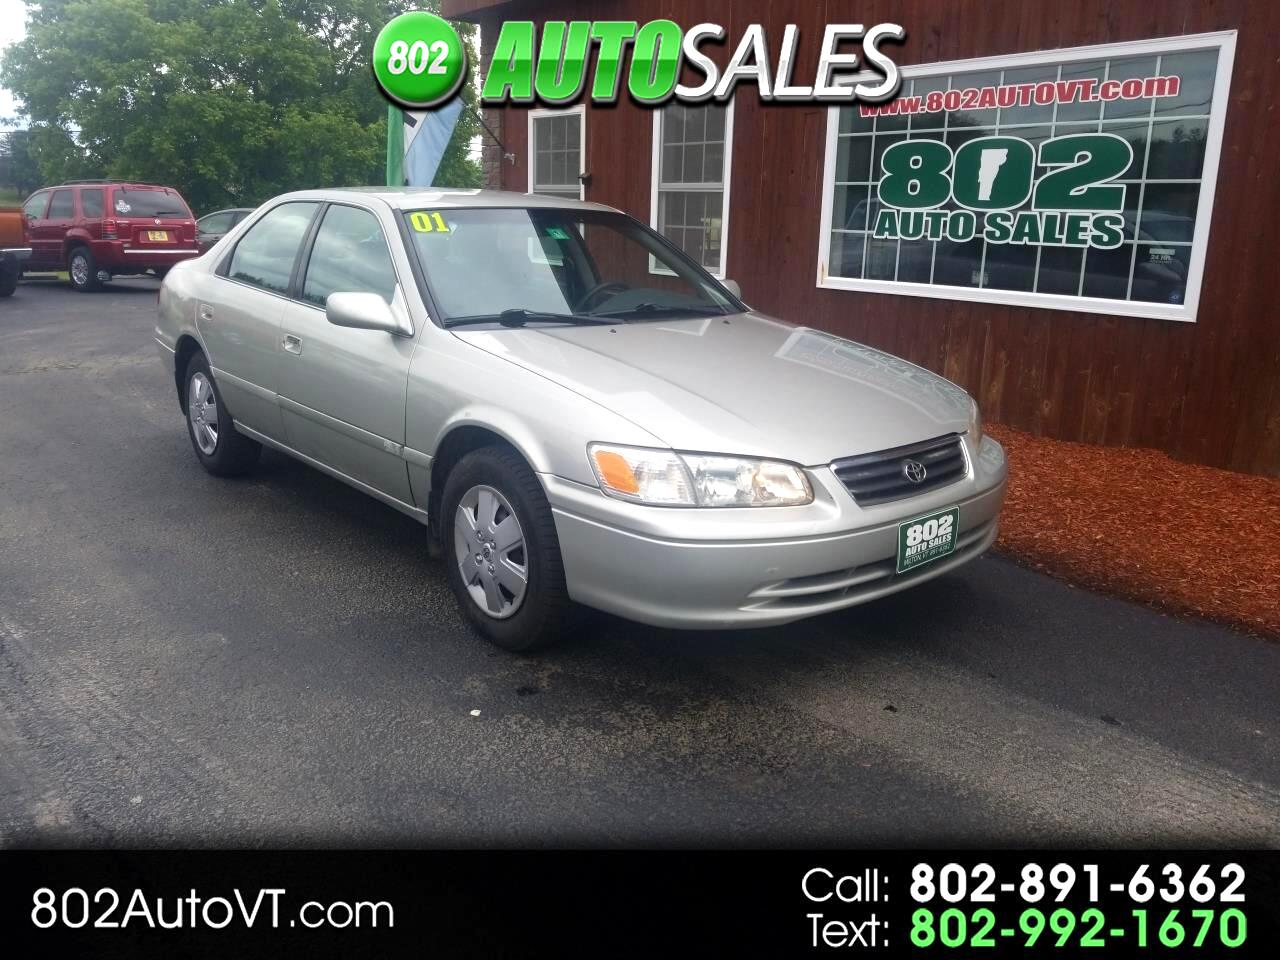 2001 Toyota Camry 4dr Sdn LE Auto (Natl)